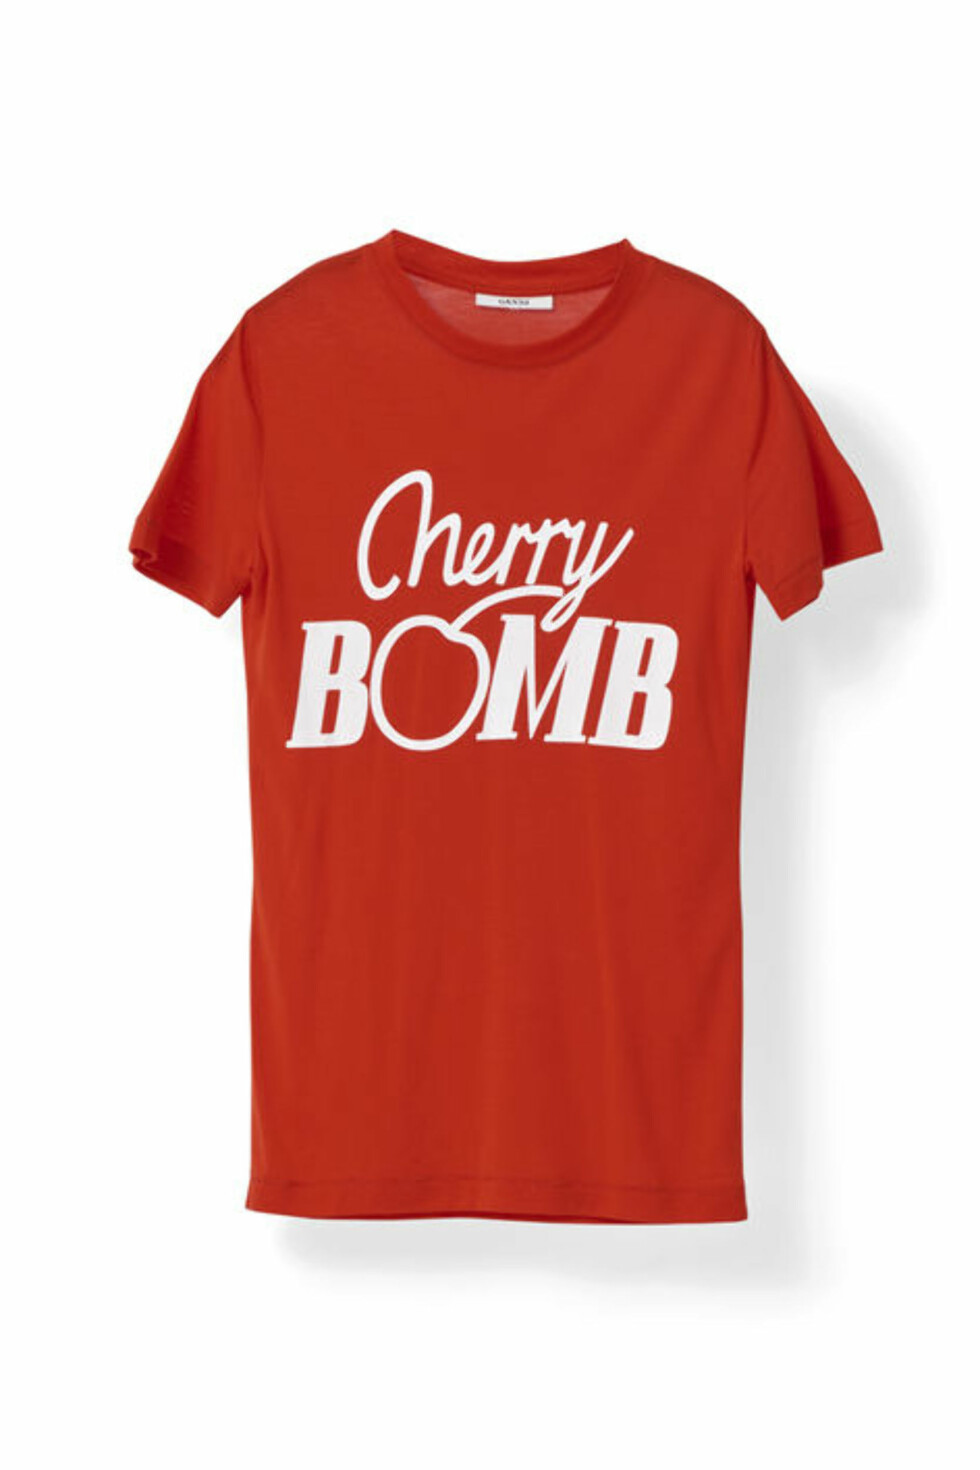 <strong>T-skjorte fra Ganni | kr 799 | http:</strong>//www.ganni.com/shop/tops-and-t-shirts/linfield-lyocell-t-shirt%2C-cherry-bomb/T1766.html?dwvar_T1766_color=Fiery%20Red